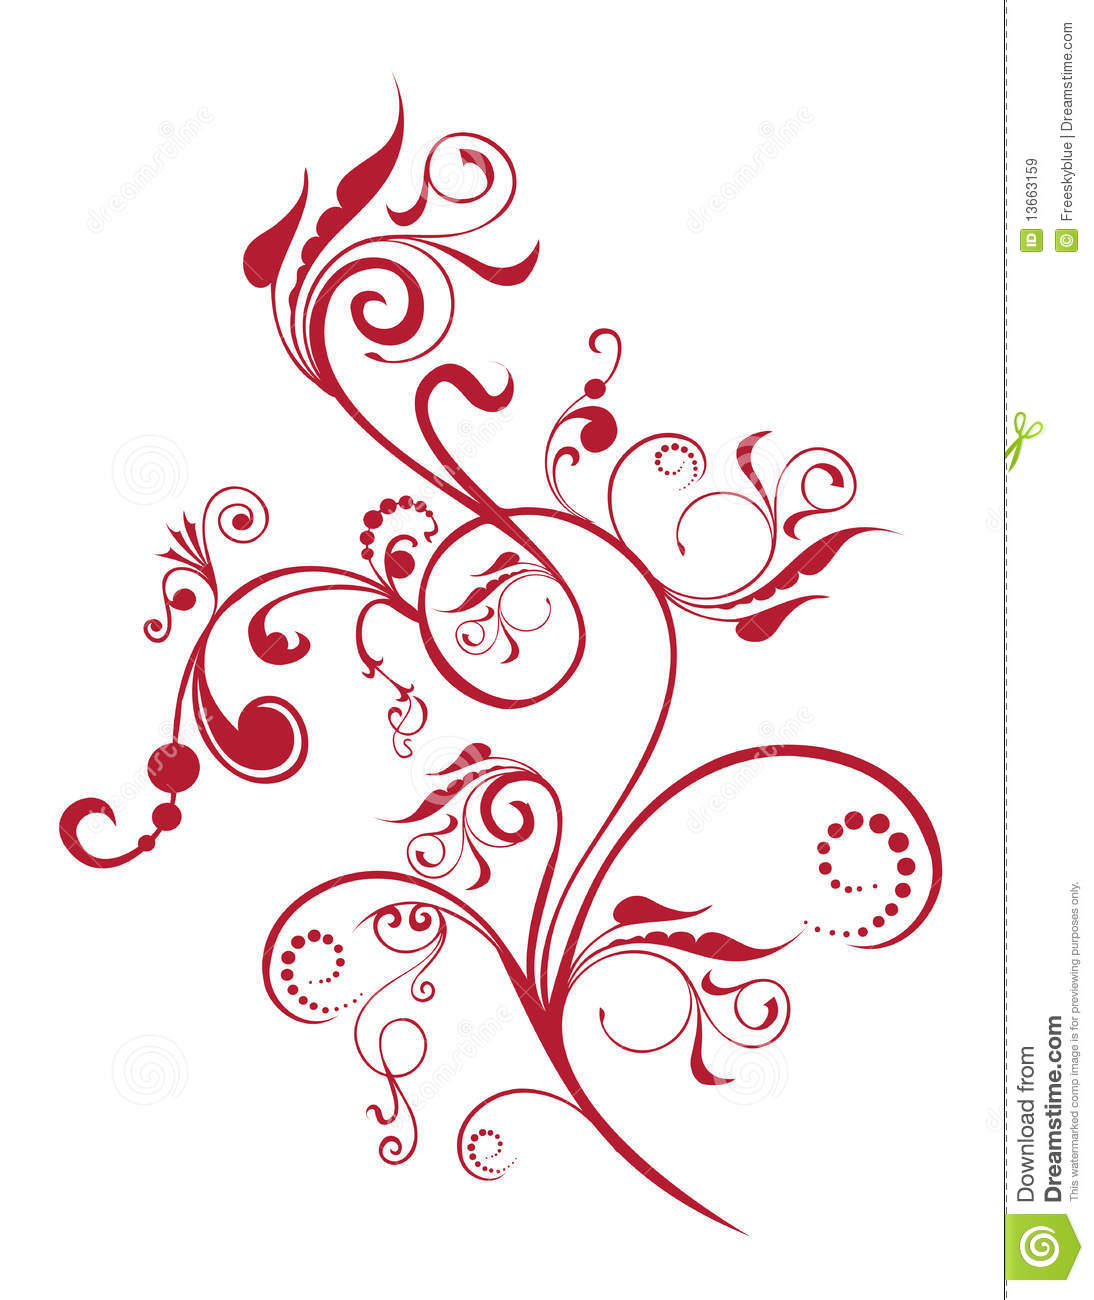 Red Flower And Vines Pattern Royalty Free Stock Images - Image ...